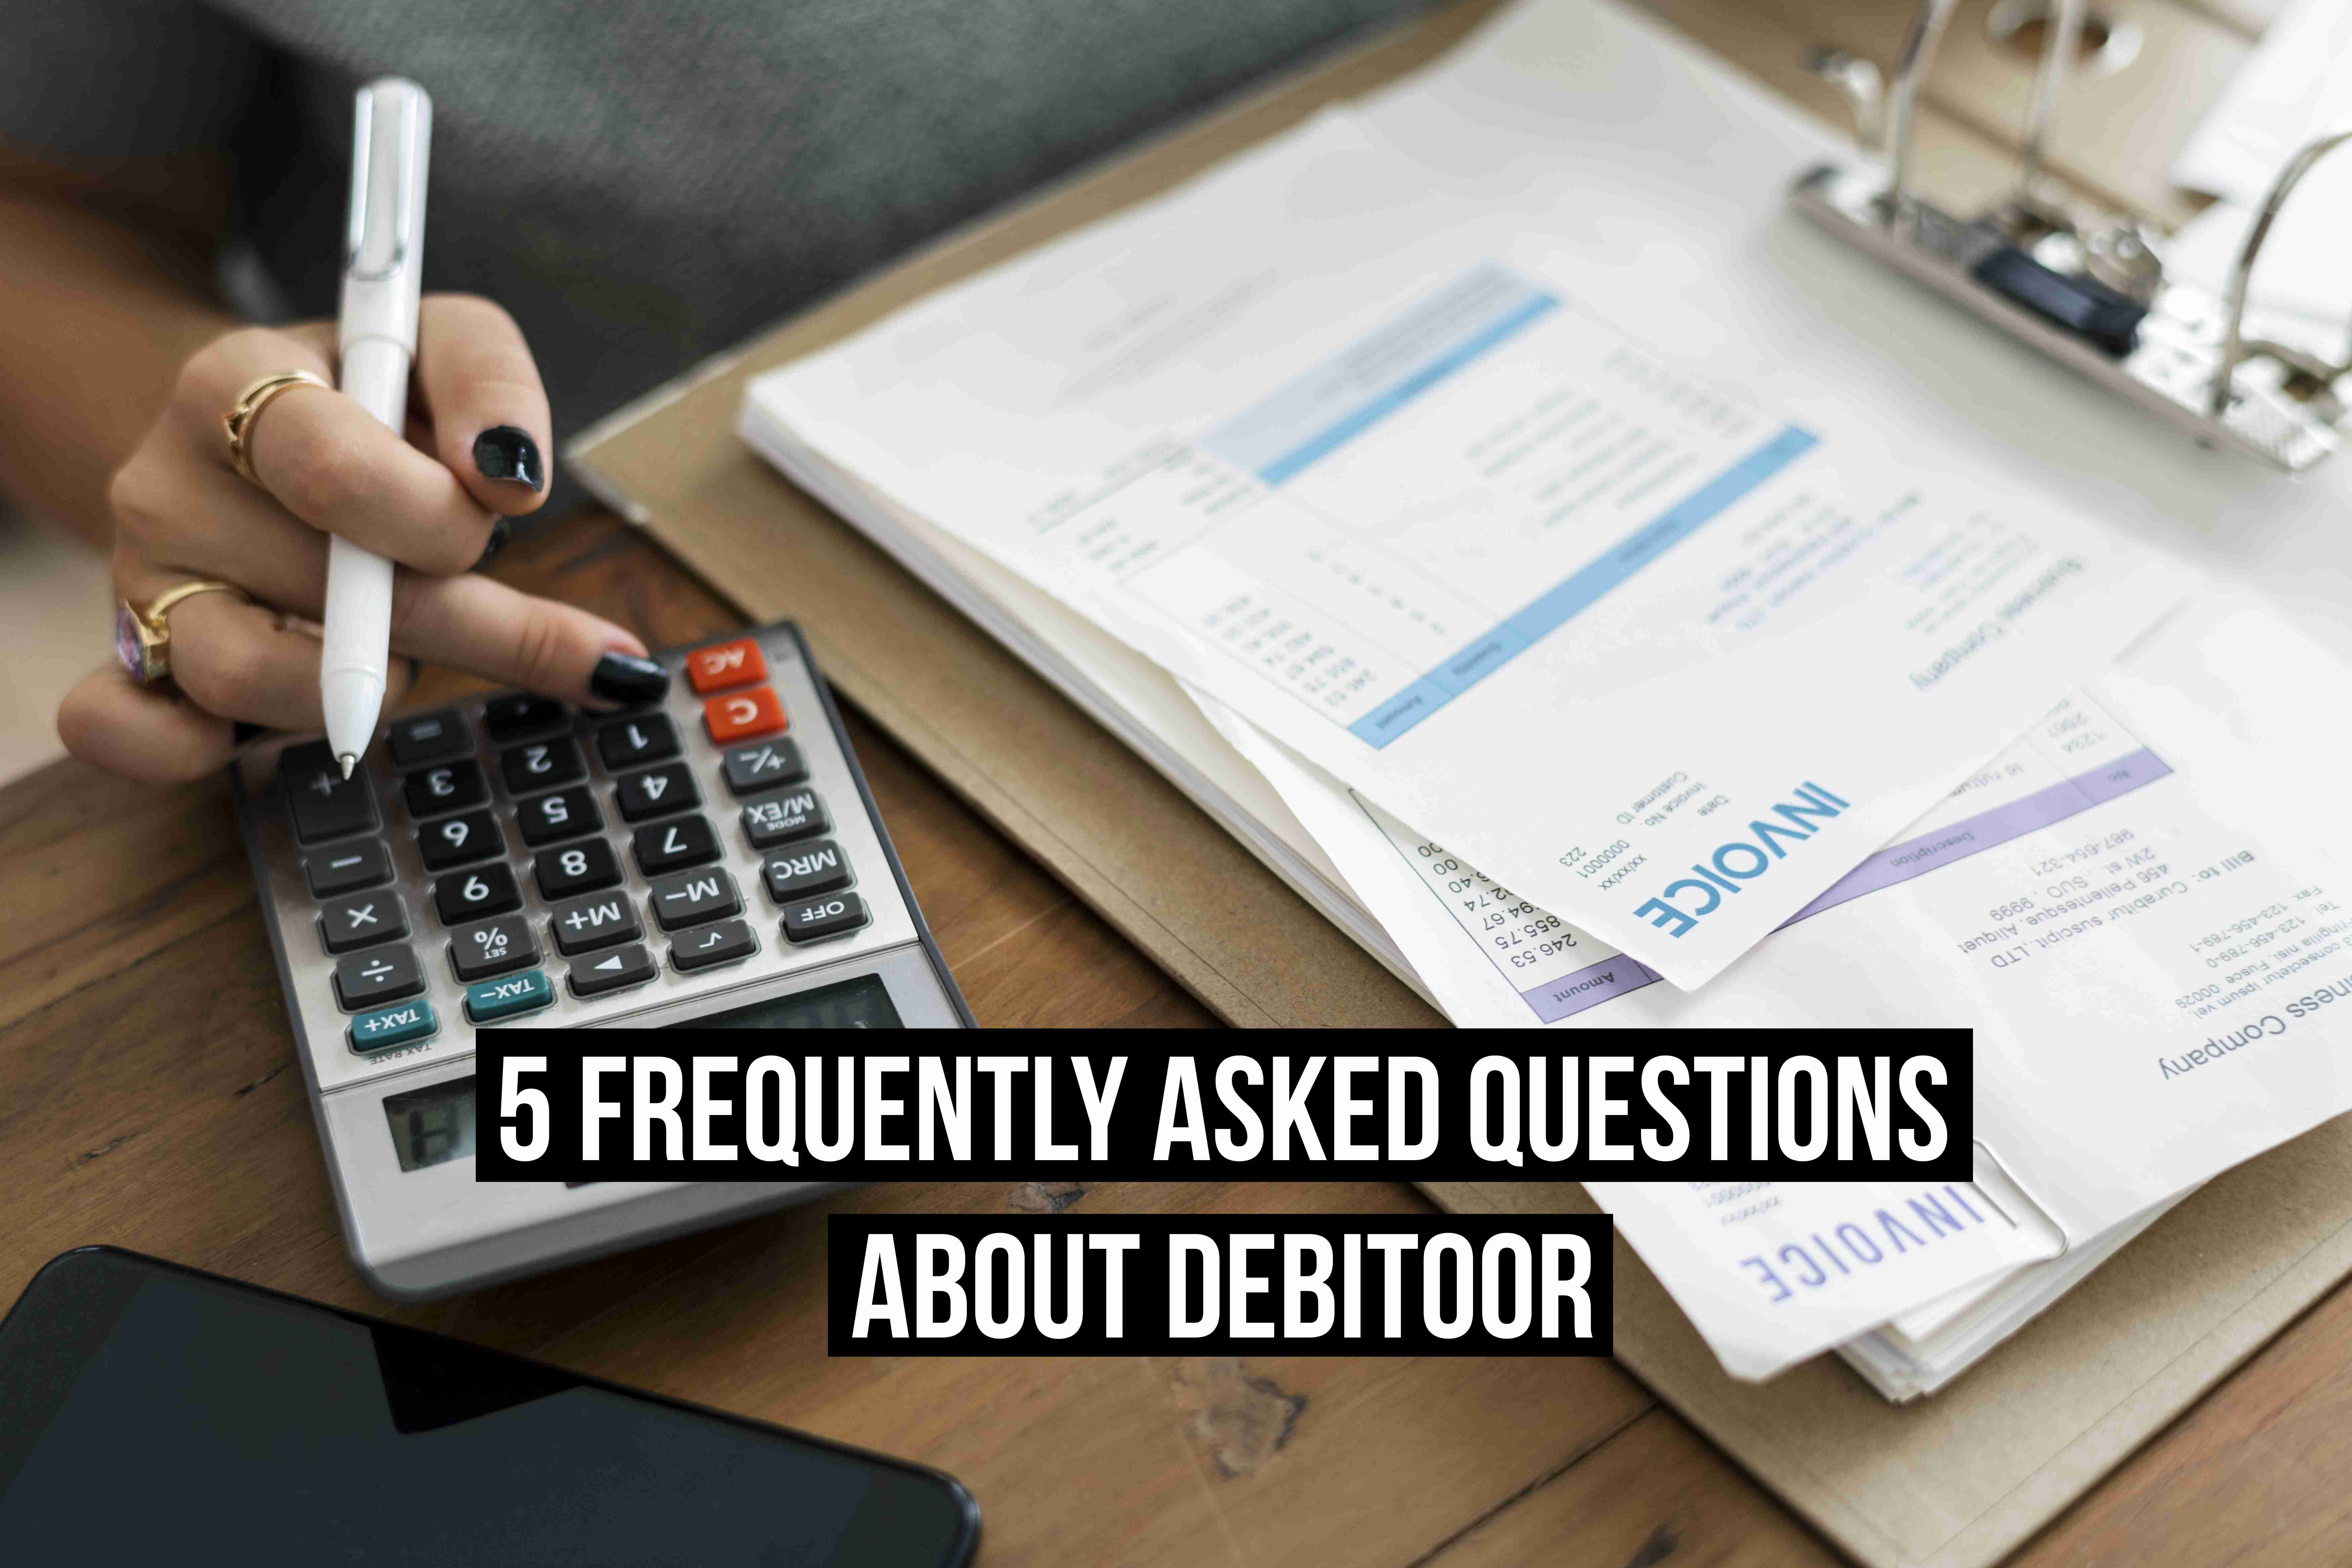 debitoor frequently asked questions title